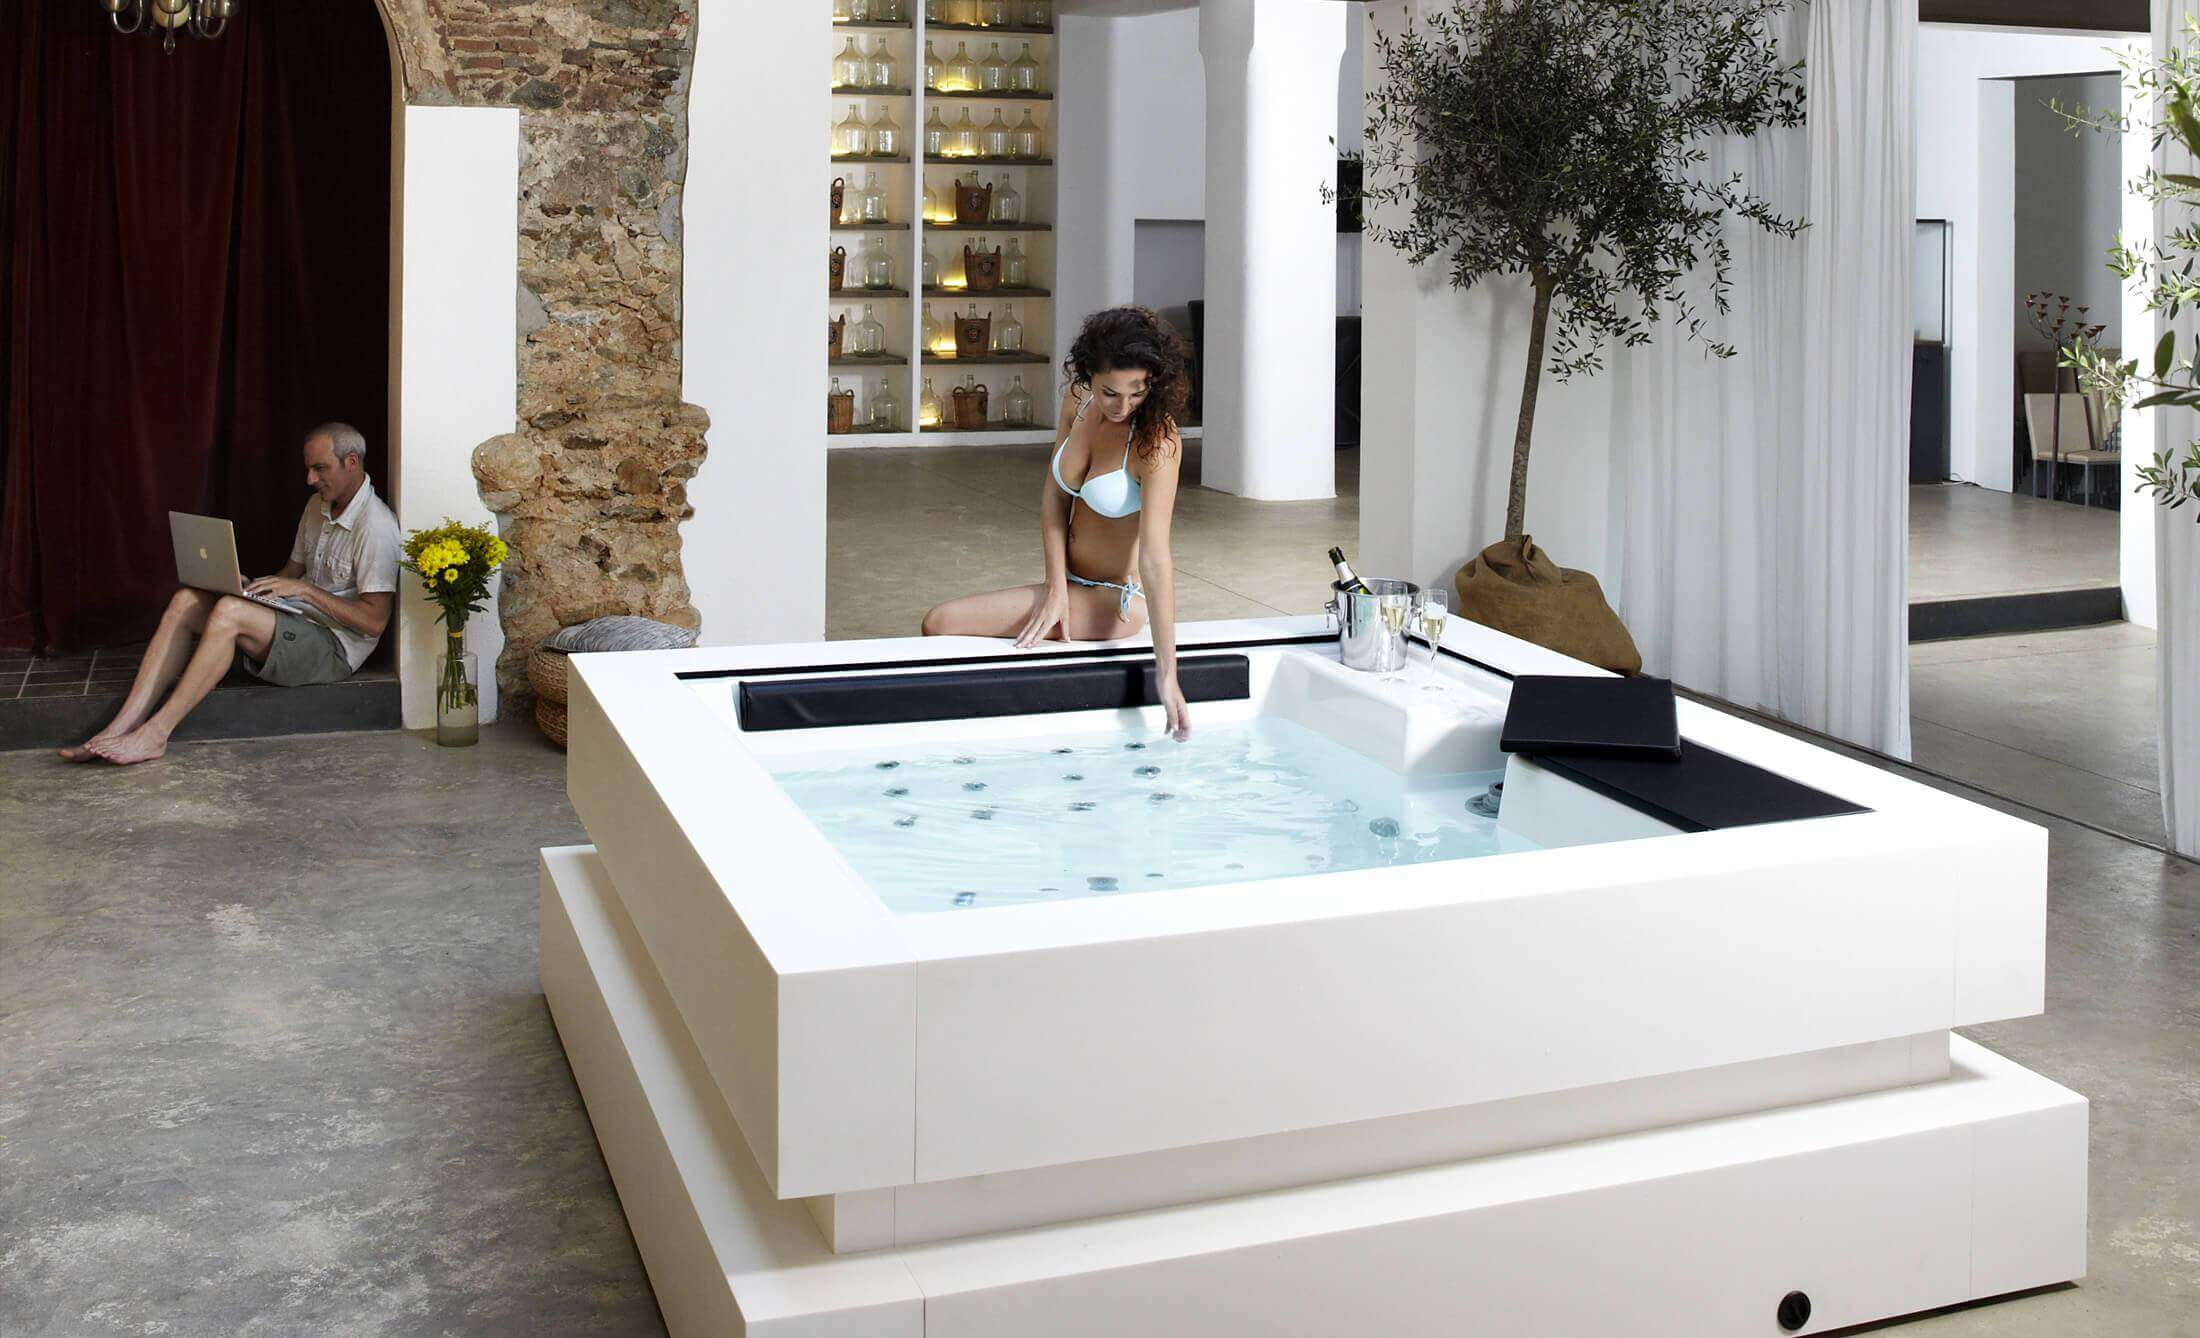 Spa Exterieur Ozone Buy Hot Tubs And Hydromassage Tubs Hot Tub Manufacturer